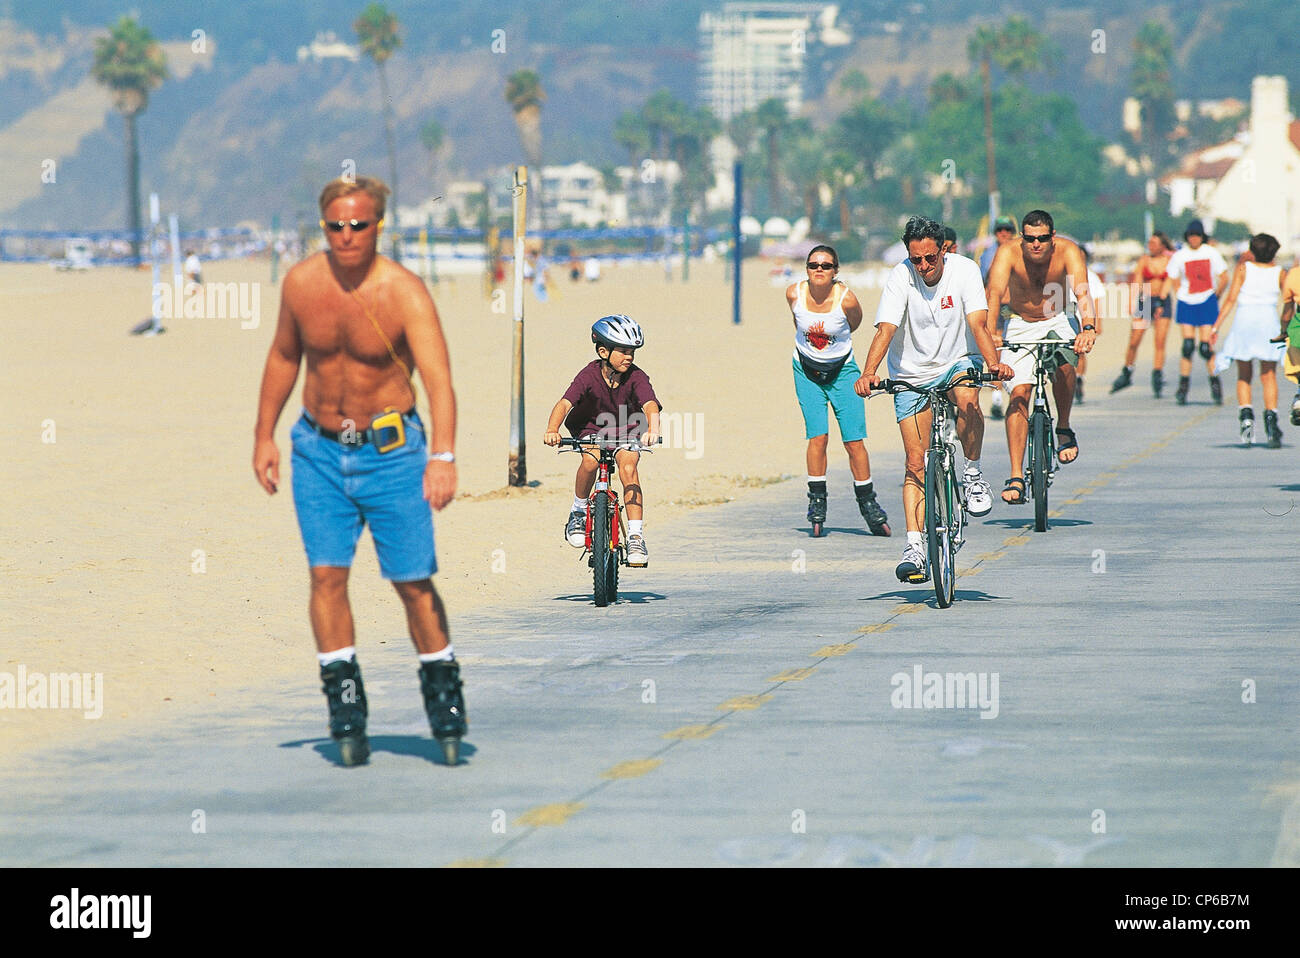 Roller skating los angeles - Stock Photo United States Of America Santa Monica California Los Angeles Children With Roller Skate Bike On Cycle Path Along Beach